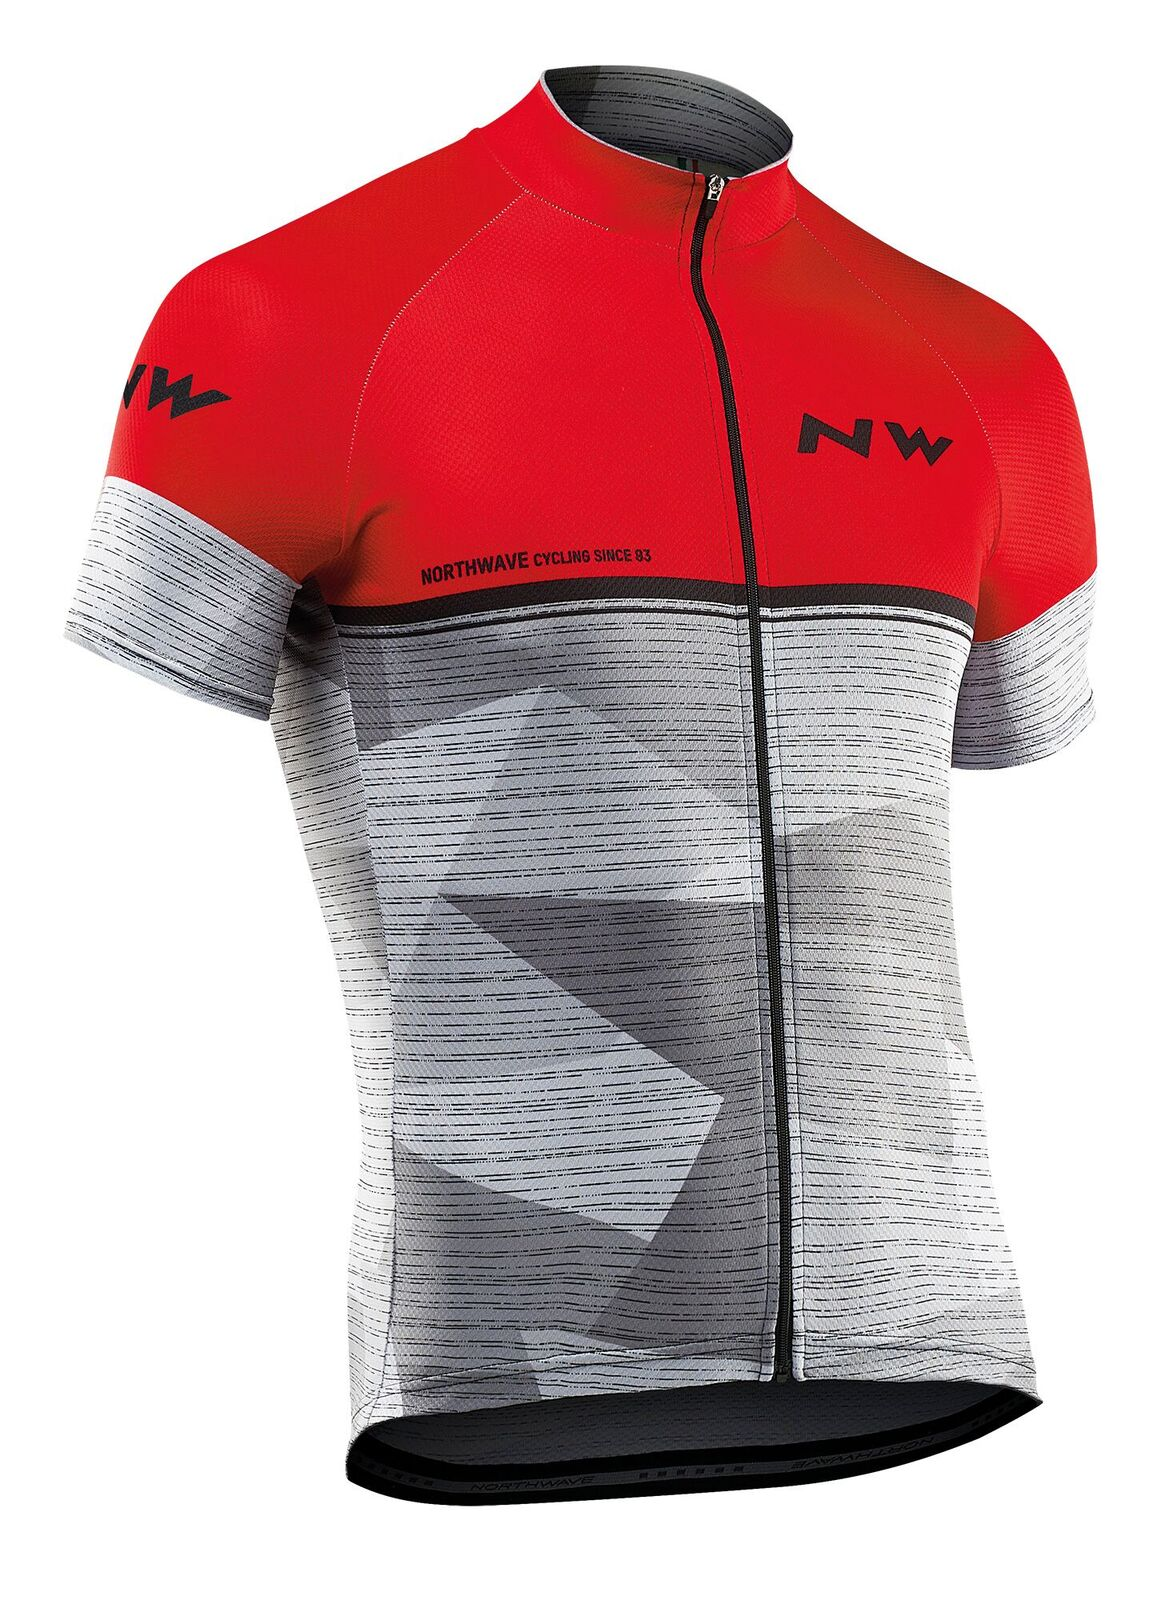 Maglia Ciclismo Maniche Corte Northwave Origin Jersey Short Sleeves RED-GREY